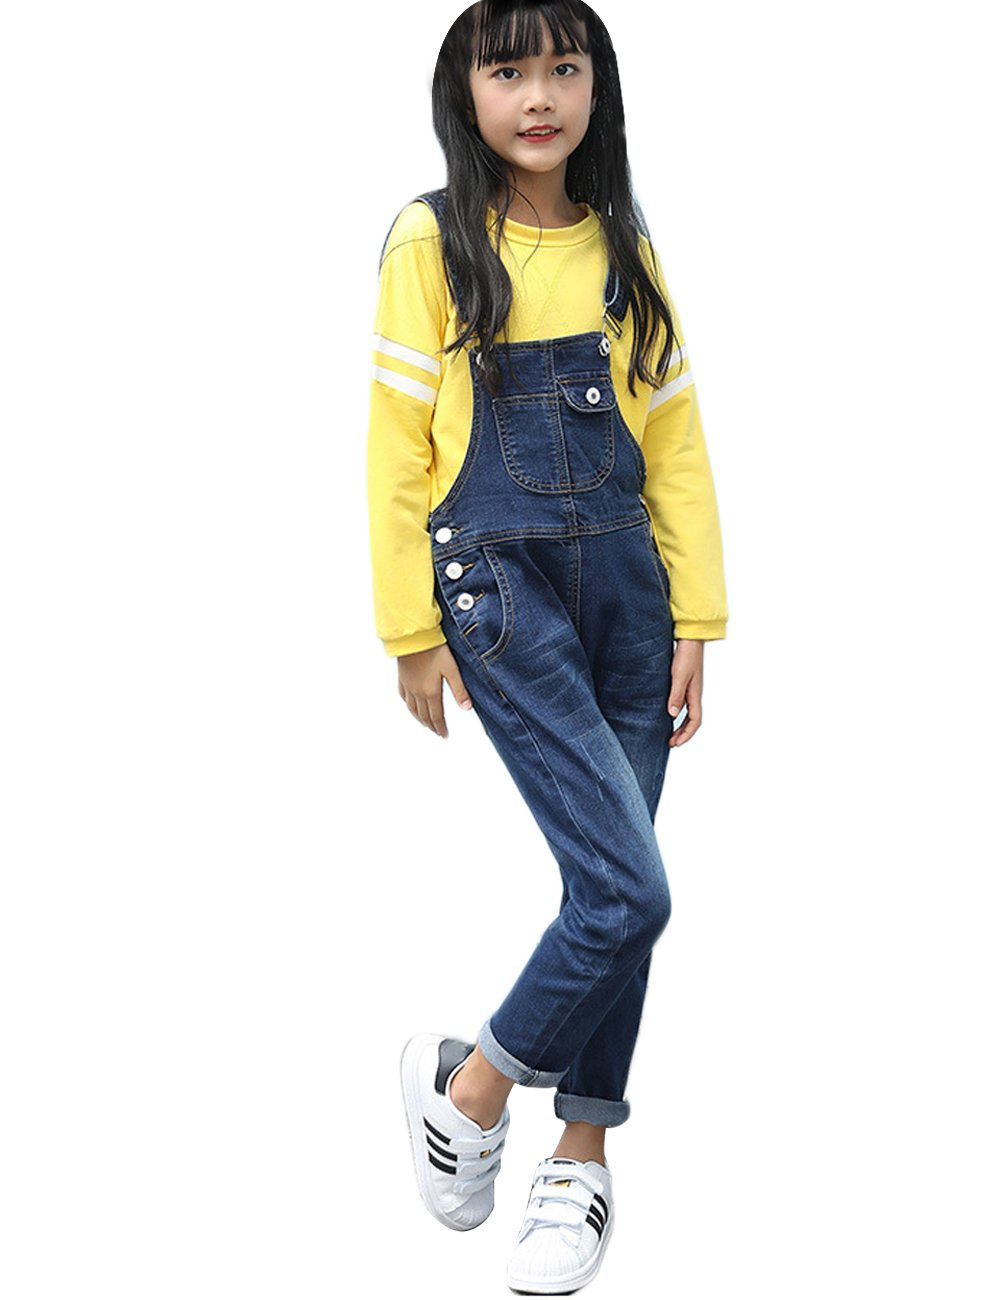 Menschwear Girl's Cotton Blue Denim Bib Overalls Stone Washed Casual Girl Bib Overalls (150cm,Blue)